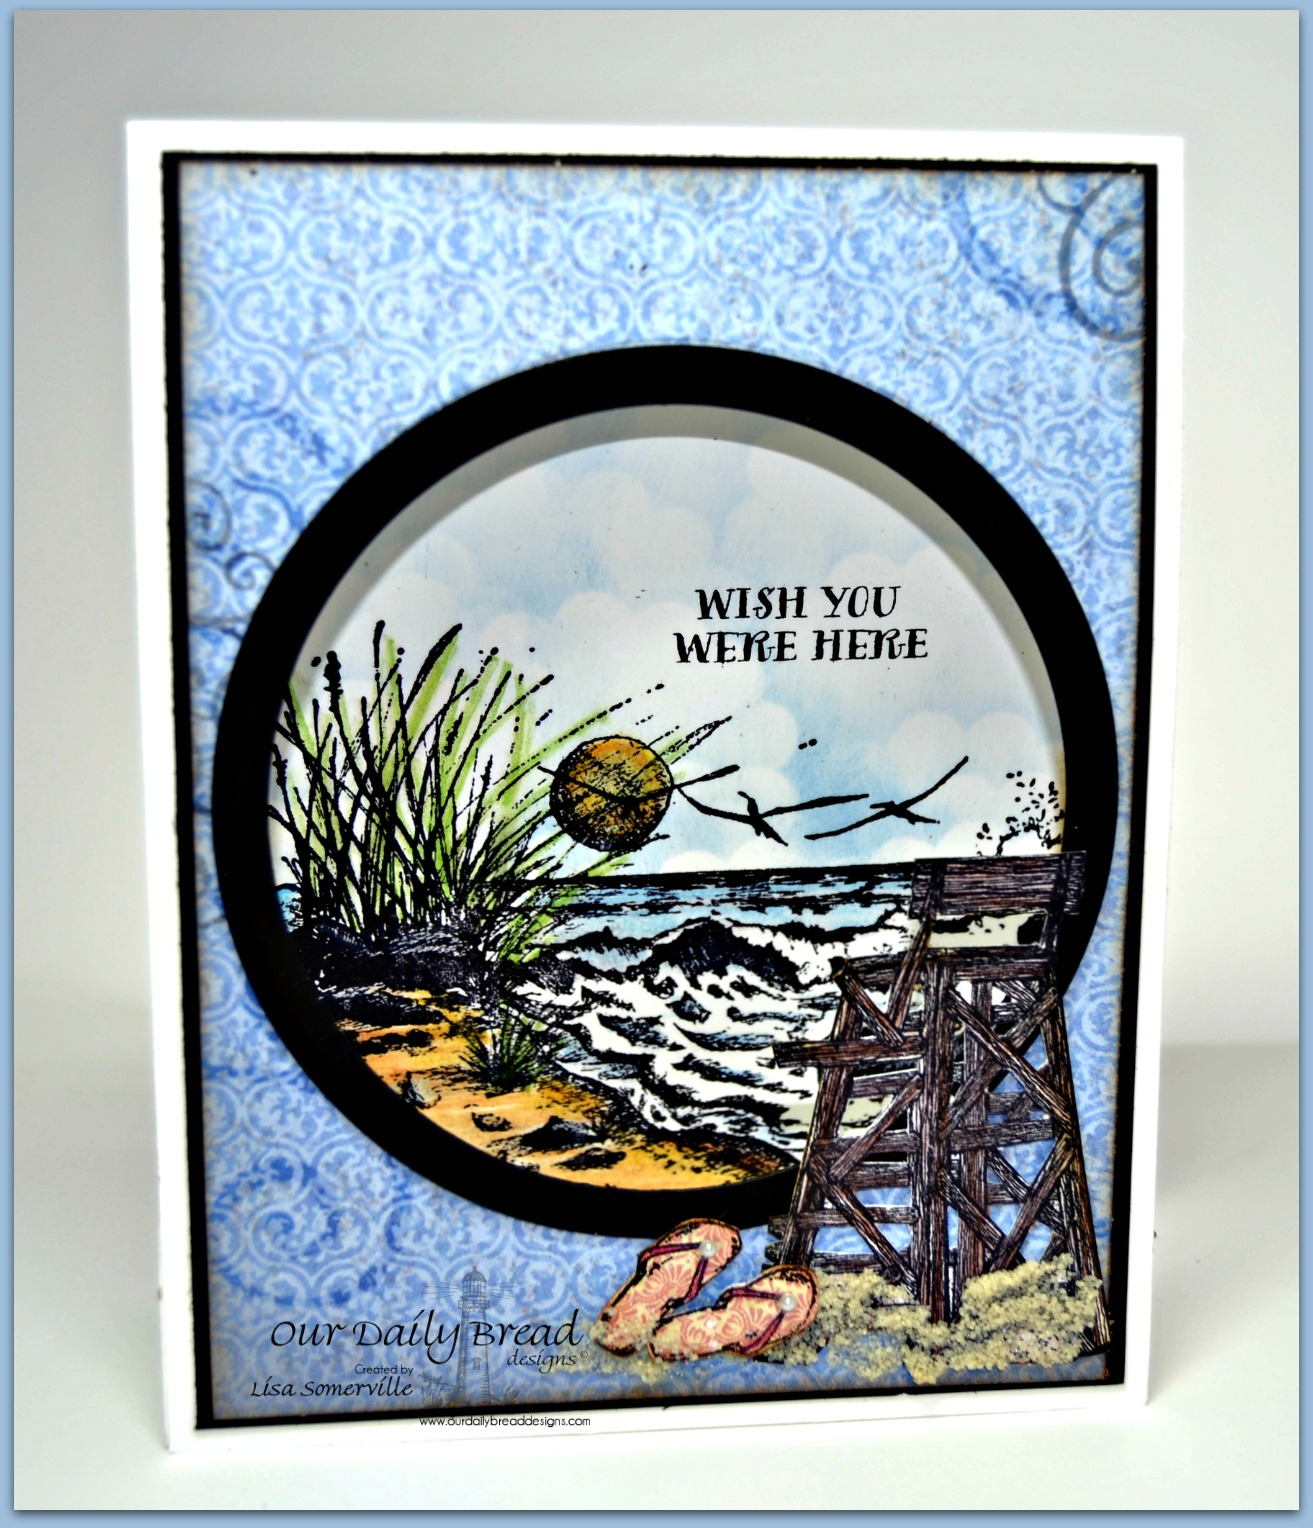 Designs by Lisa Somerville: Sand, Surf and Sun! Our Daily Bread ...